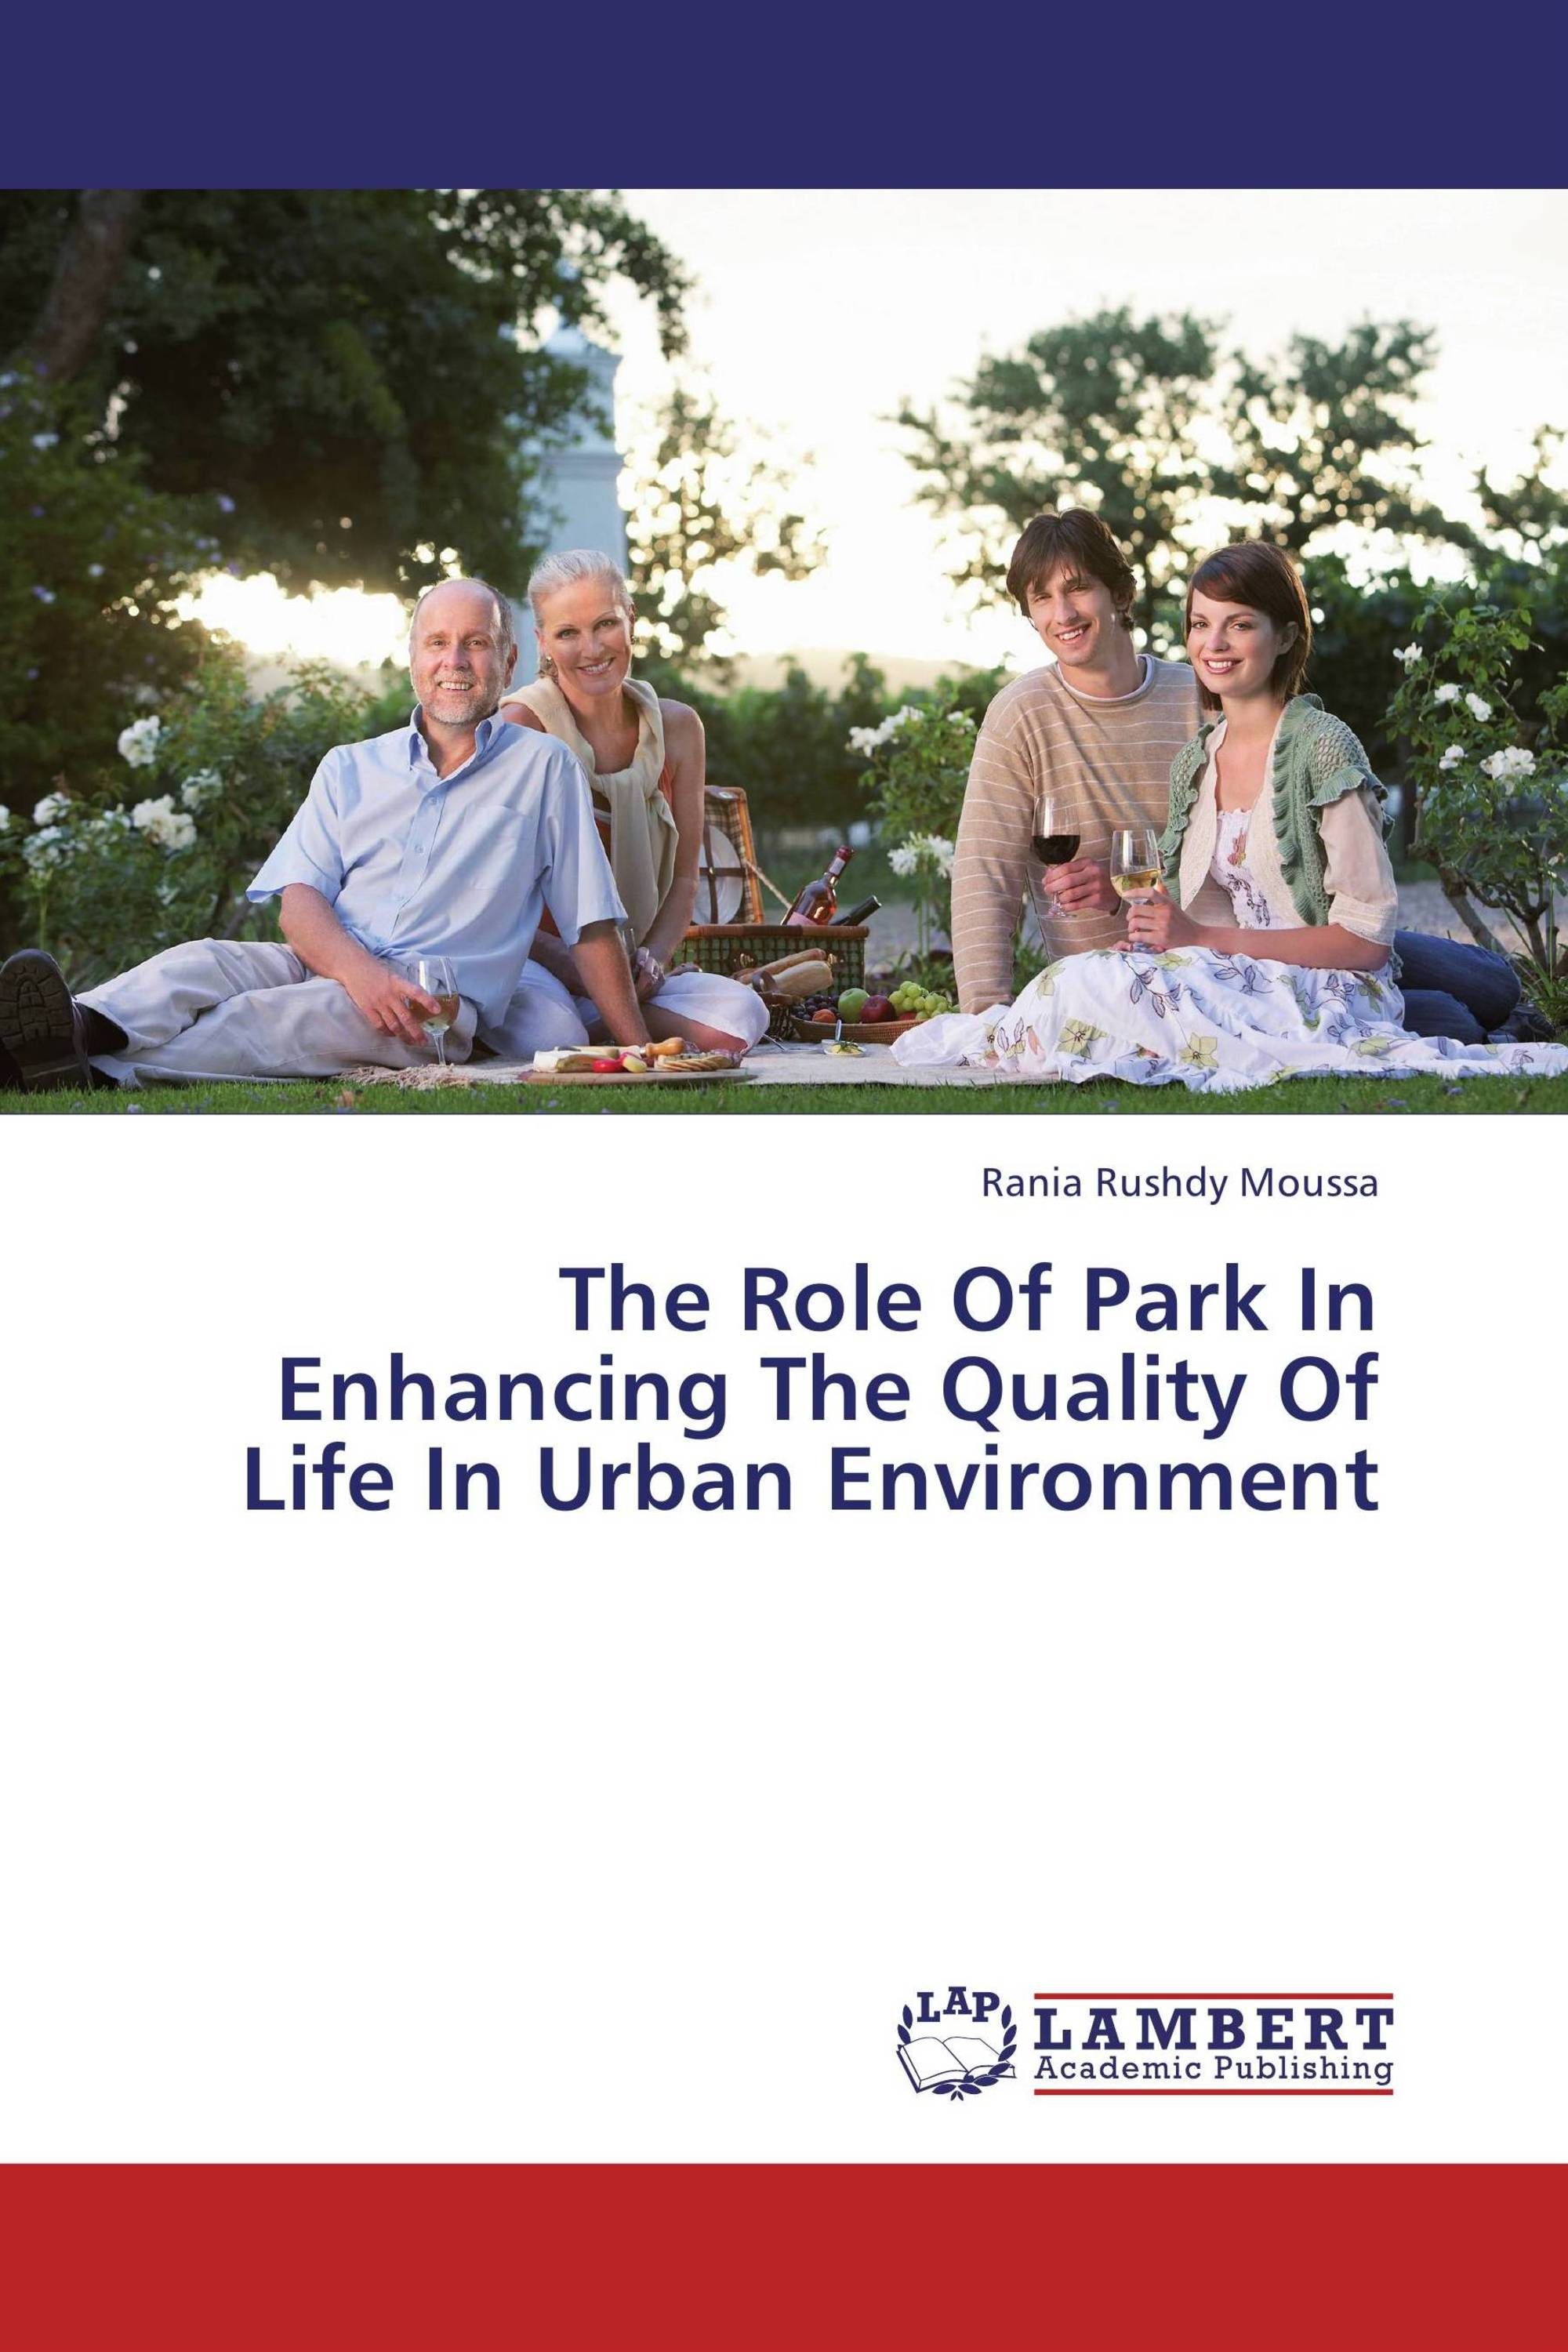 The Role Of Park In Enhancing The Quality Of Life In Urban Environment